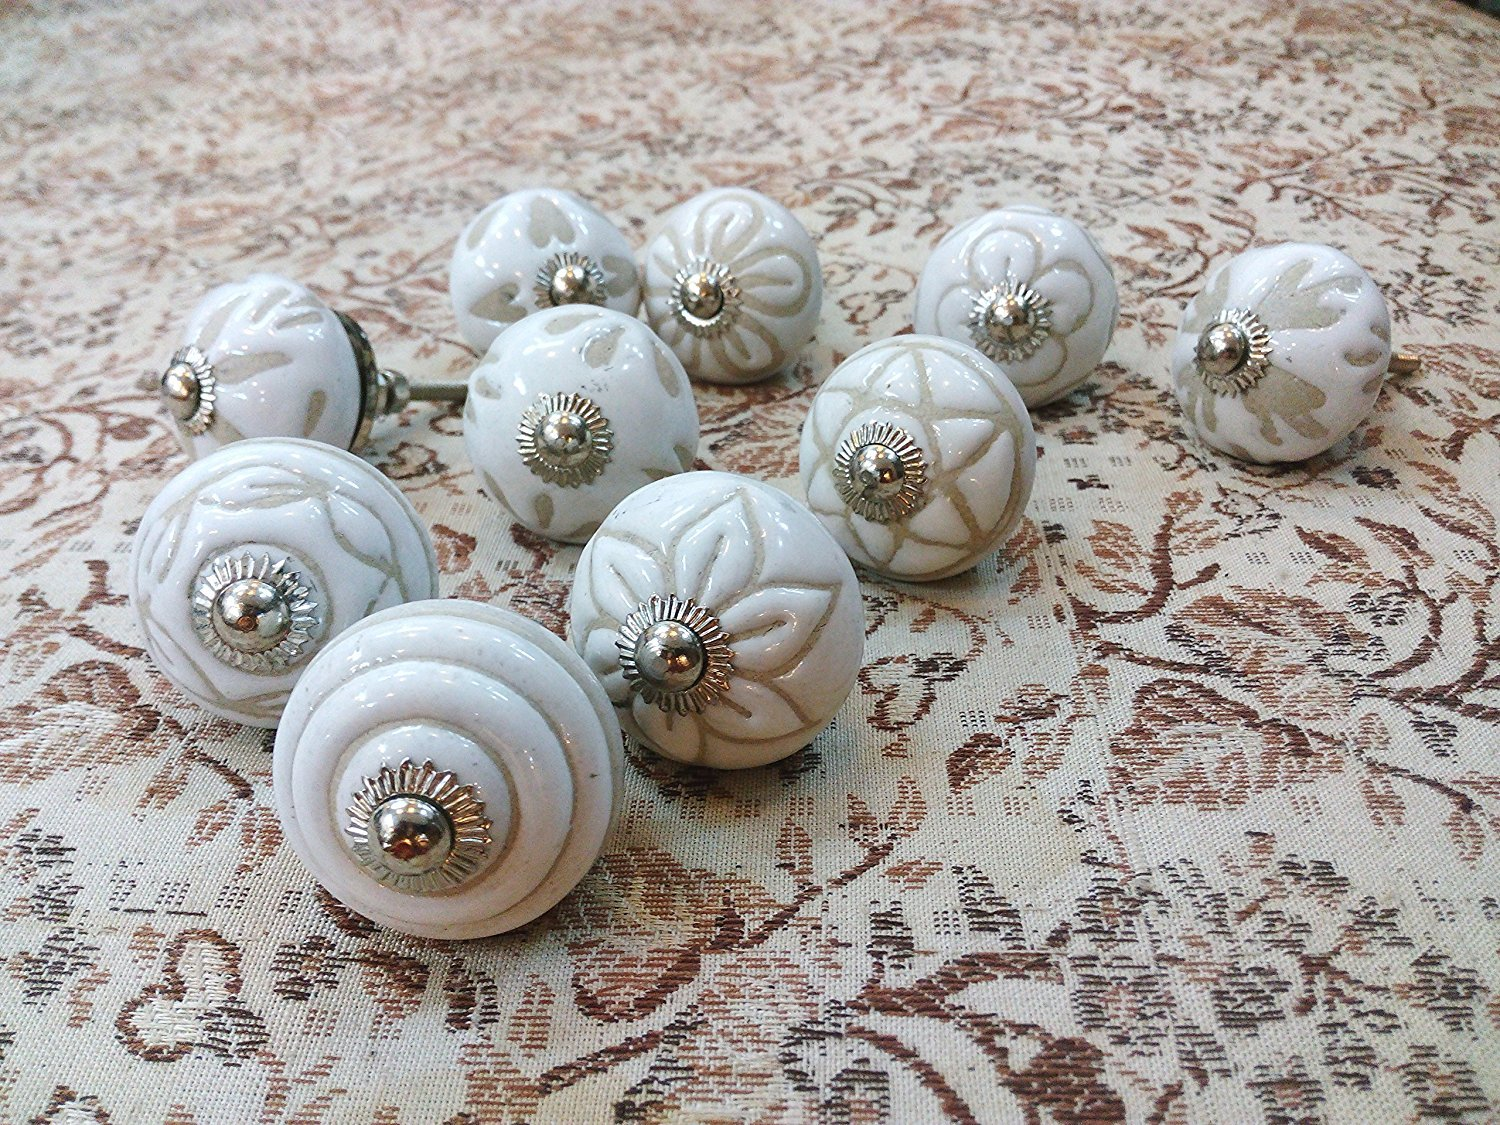 JGARTS 10 Knobs White Hand Painted Ceramic Knobs Cabinet Drawer Pull